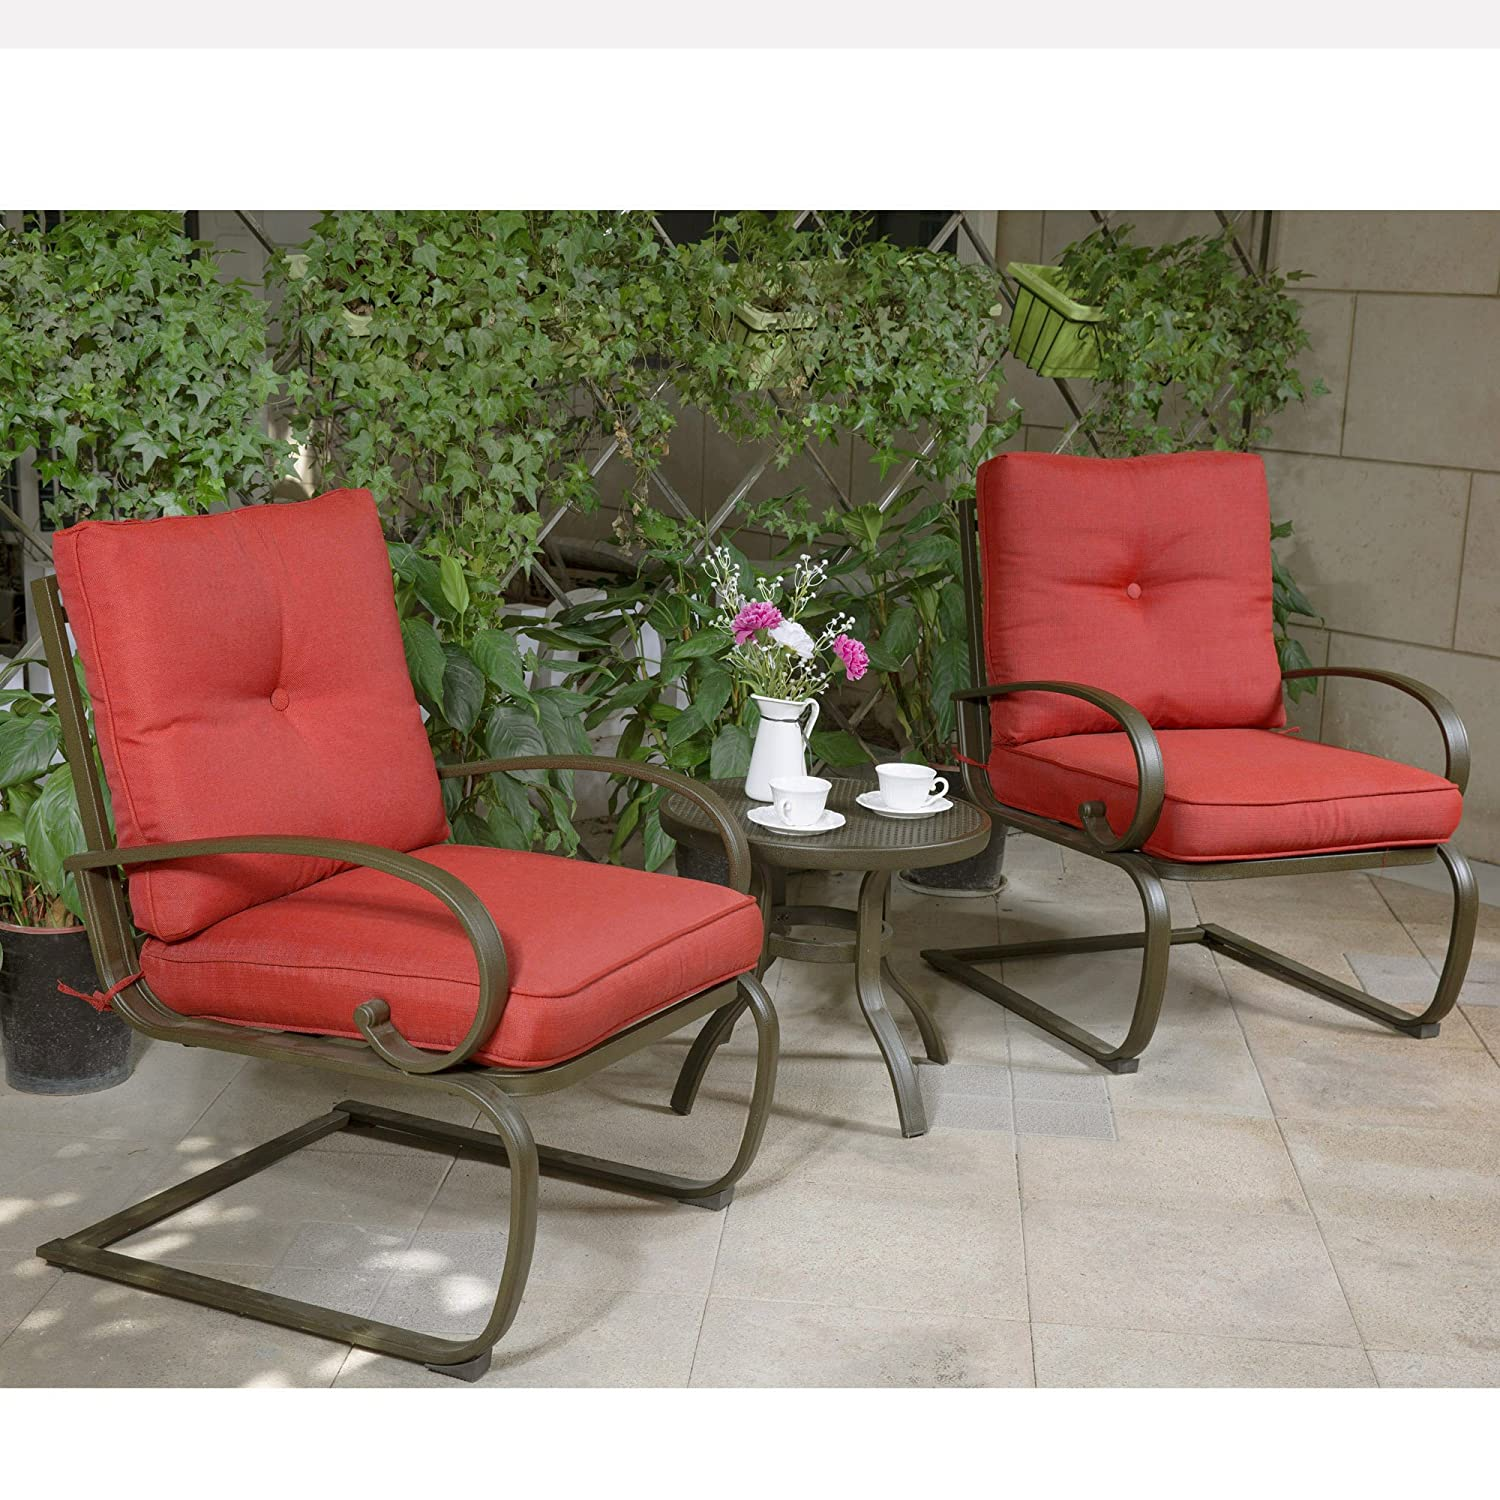 Amazon.com: Cloud Mountain Bistro Table Set Outdoor Bistro Set Patio Cafe  Furniture Seat, Wrought Iron Bistro Set, Garden Set with Cushioned Seats,  ... - Amazon.com: Cloud Mountain Bistro Table Set Outdoor Bistro Set Patio